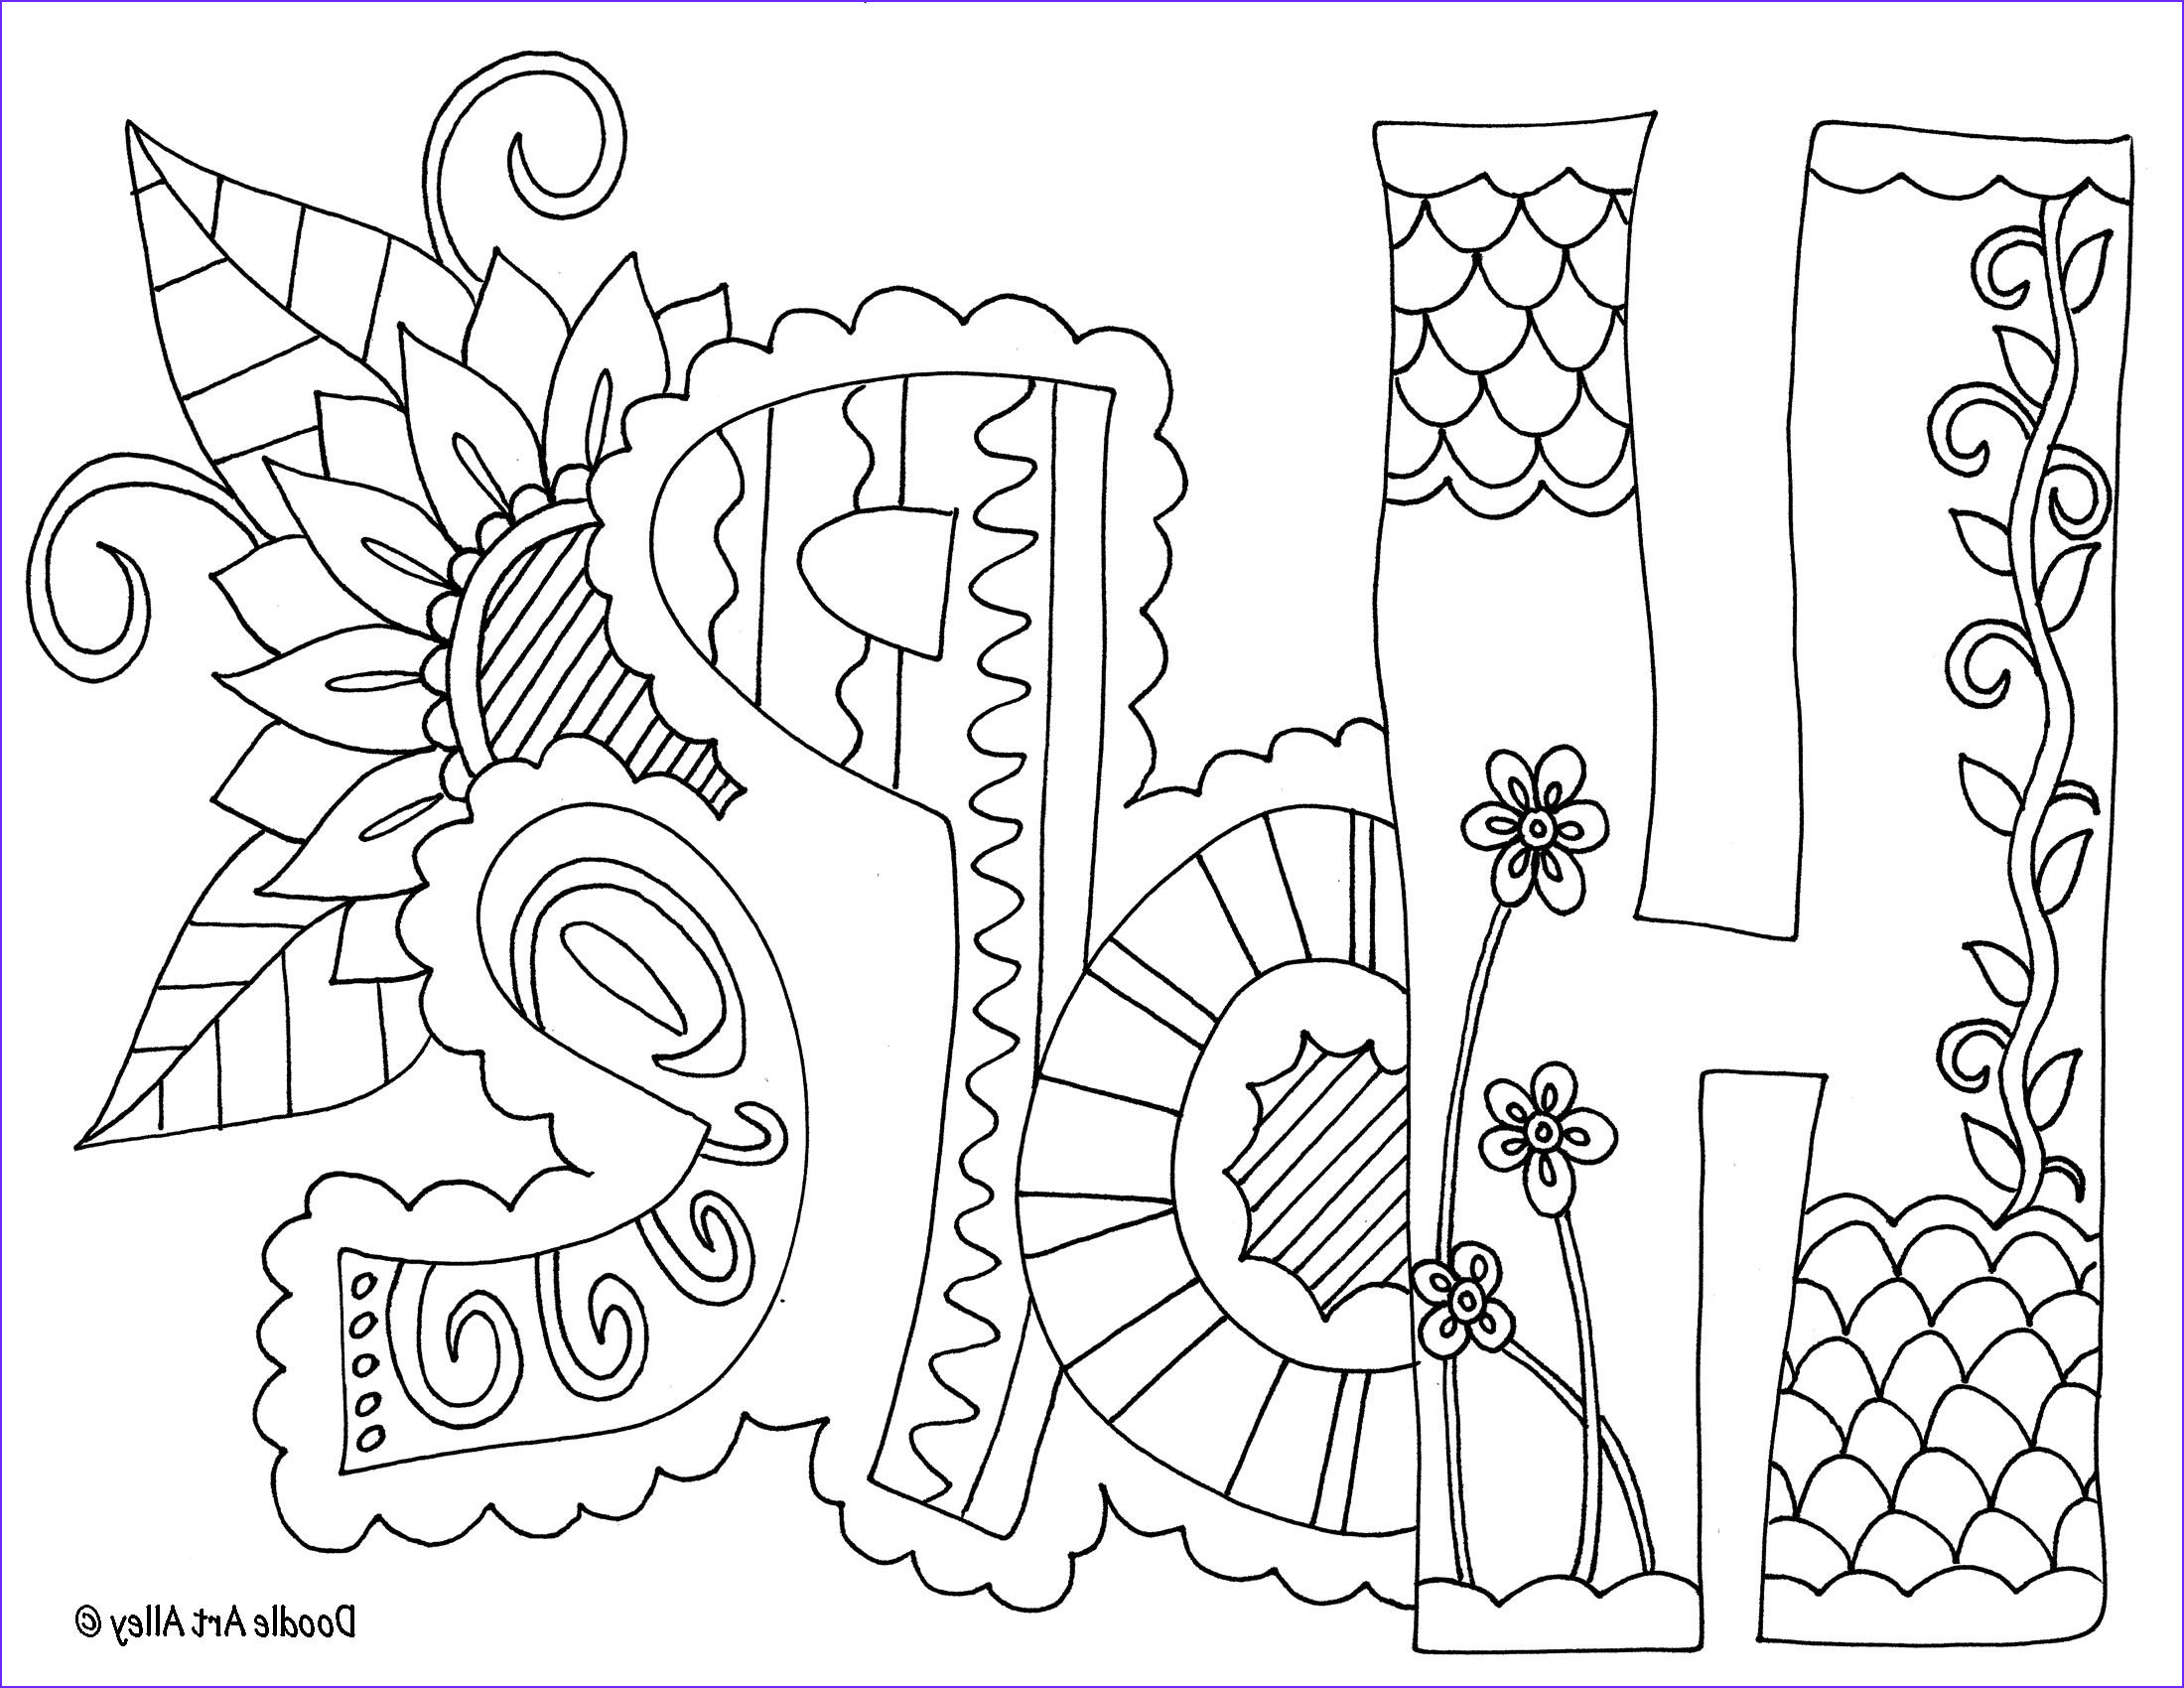 Therapeutic Coloring Pages Elegant Photos Pin by Mary Barnes Ekobena On Adult Coloring therapy Free